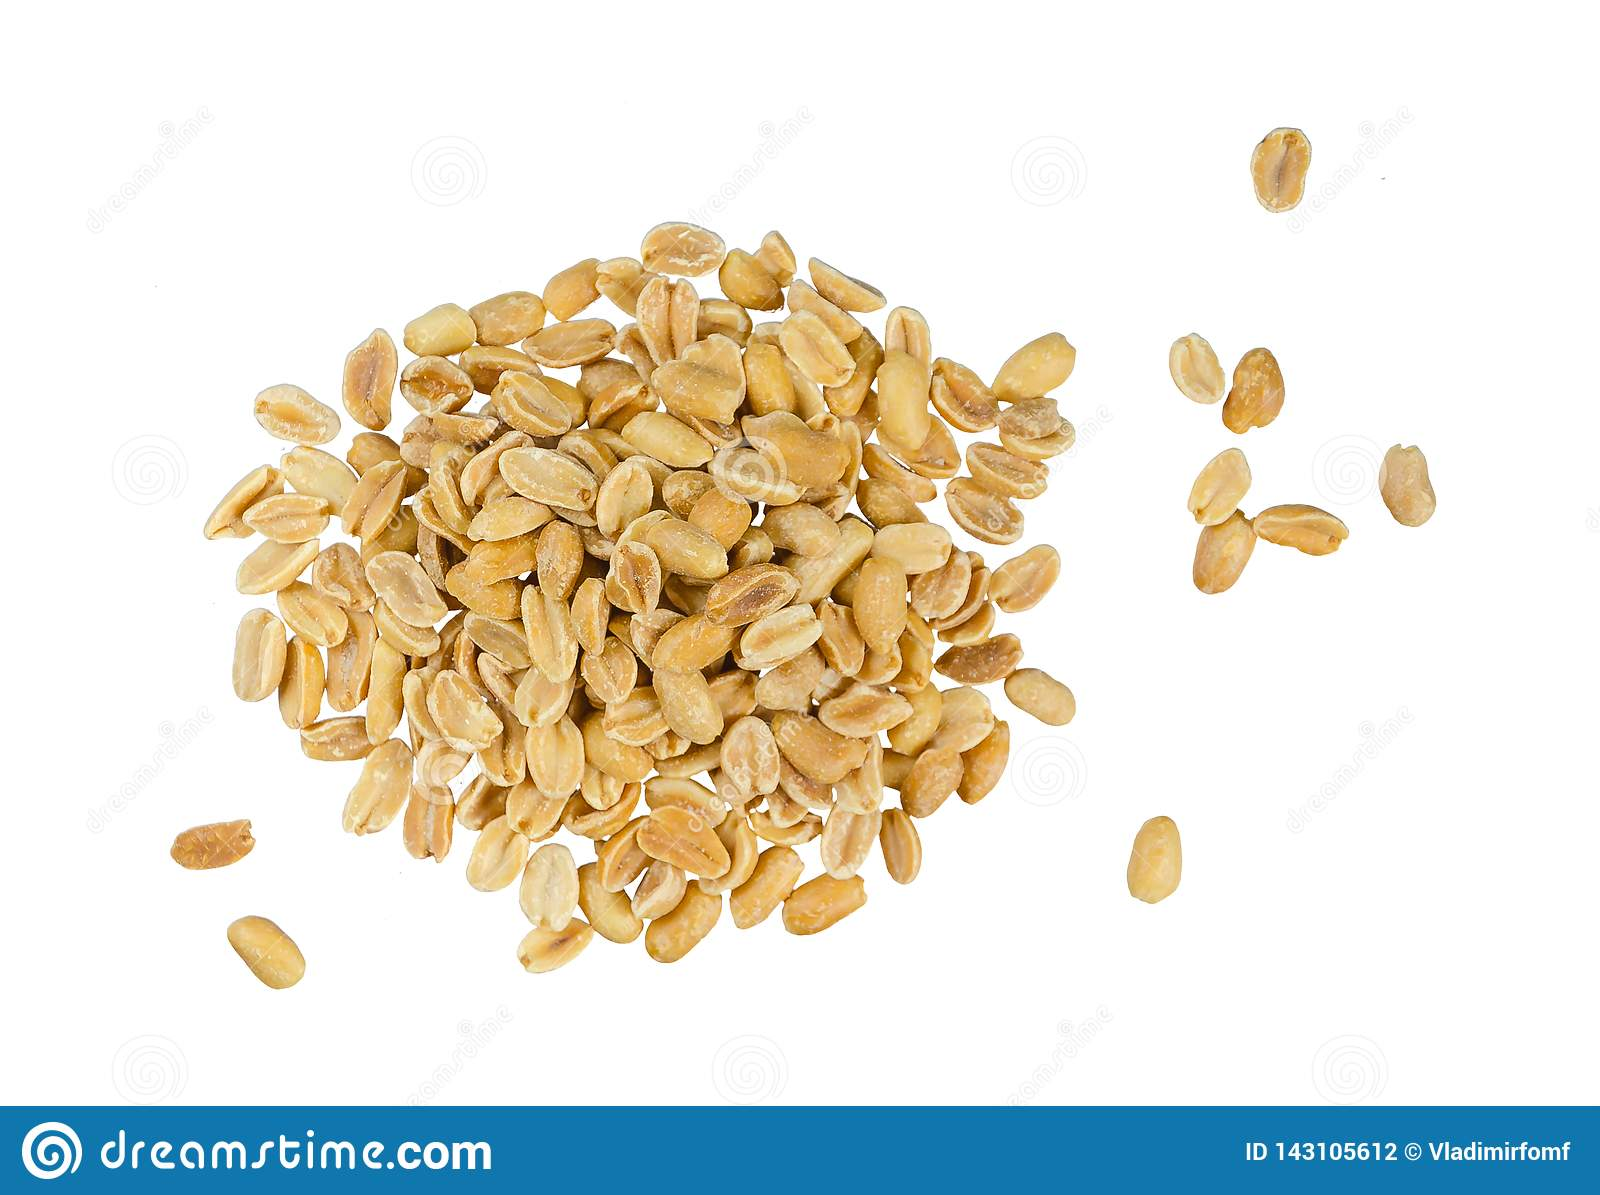 Peanuts pile isolated on white background, top view